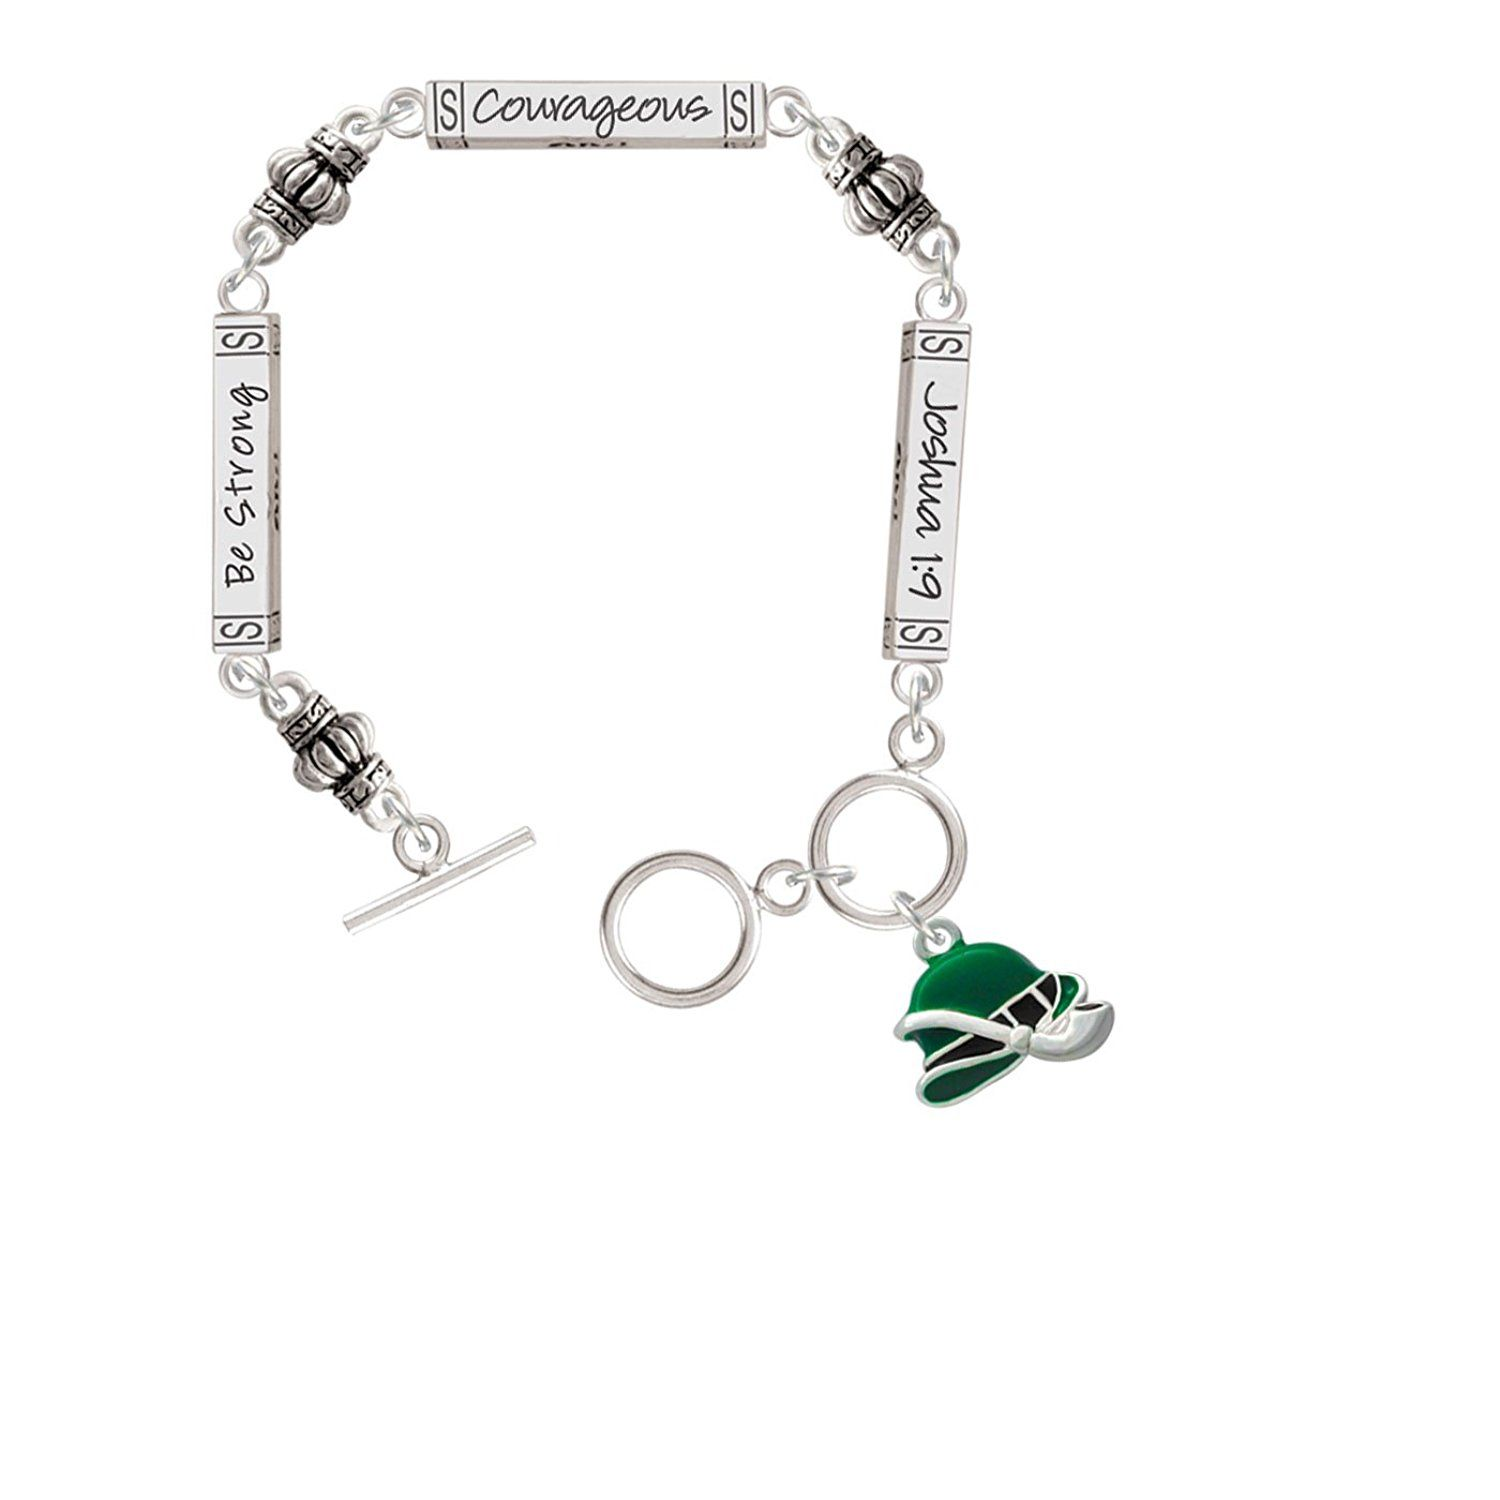 Pin On Charms And Charm Bracelets